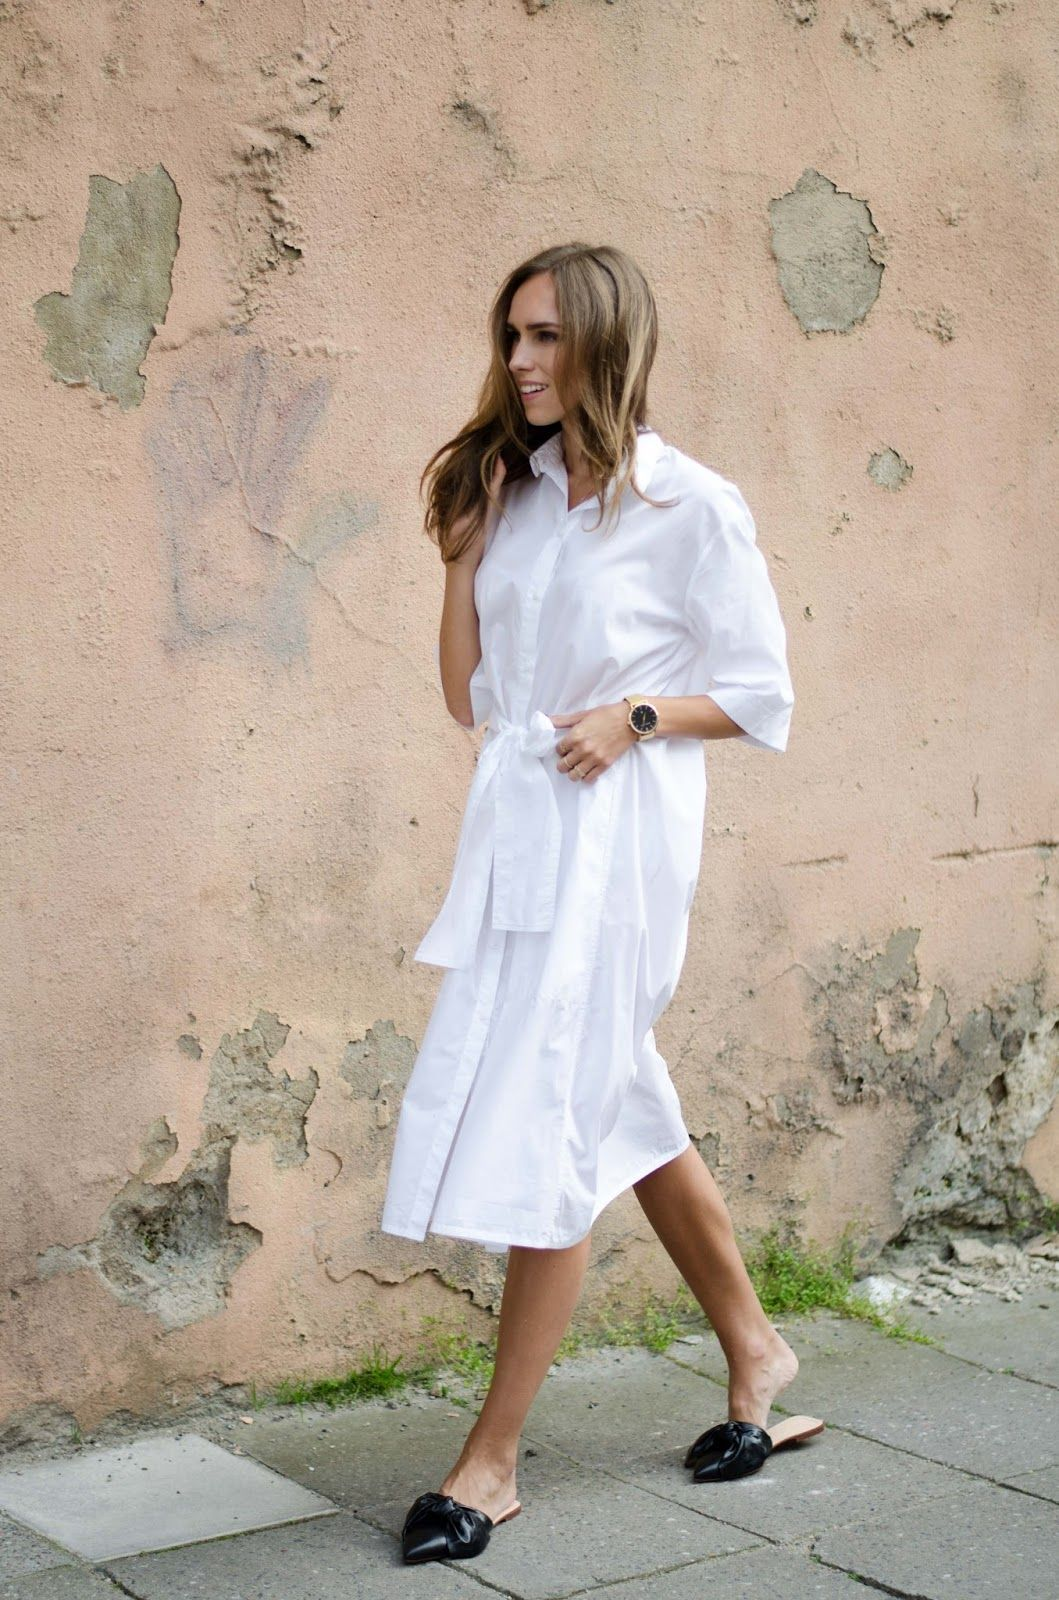 Choose a dress/shirt with 3/4 sleeves